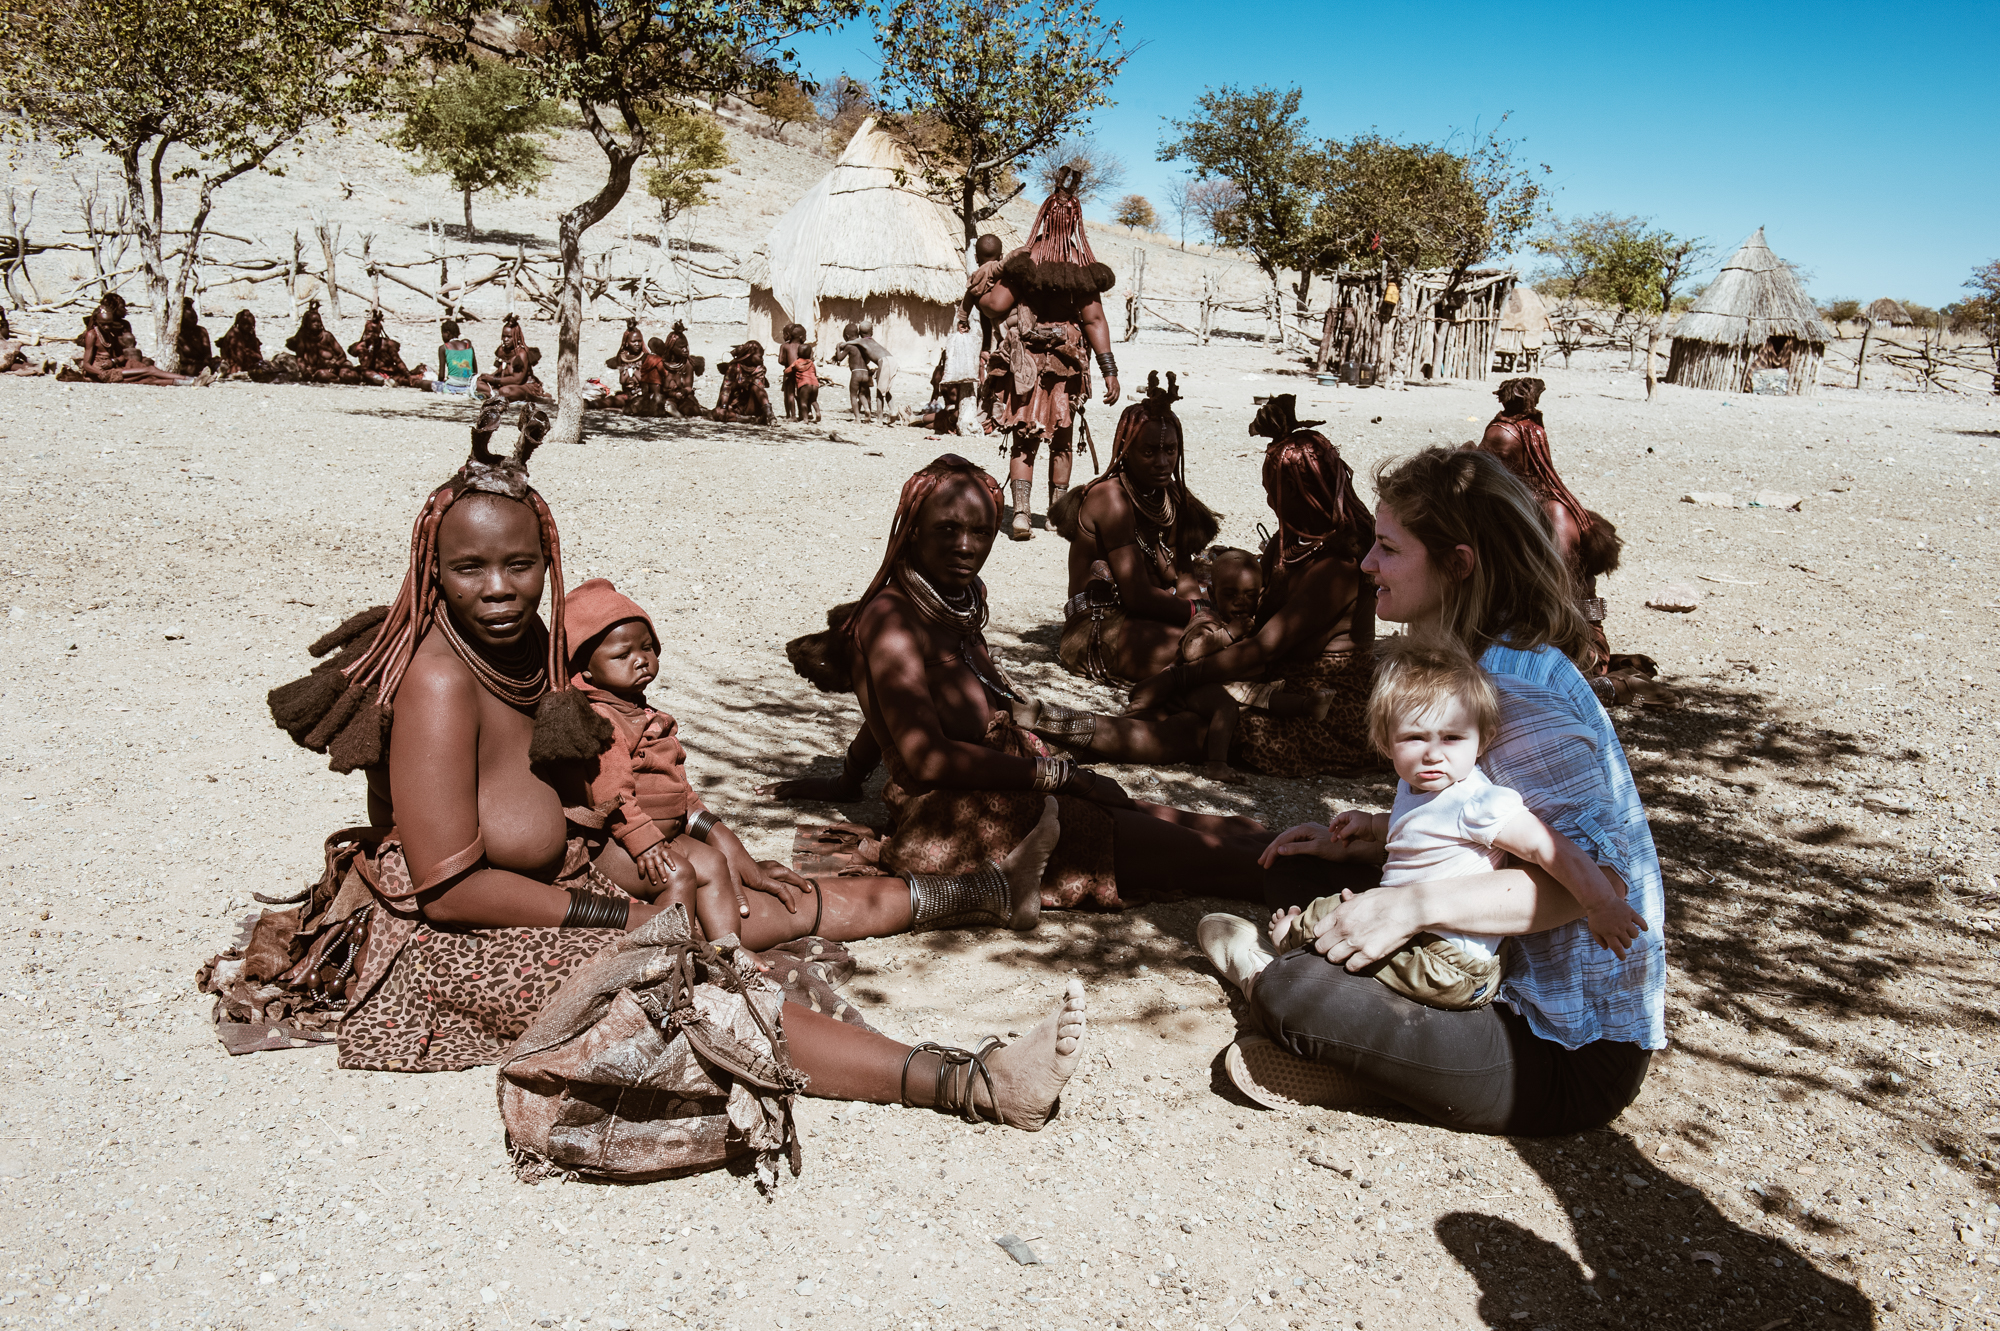 White tourist with a baby interacting with Himba women, Kaokoland, Namibia